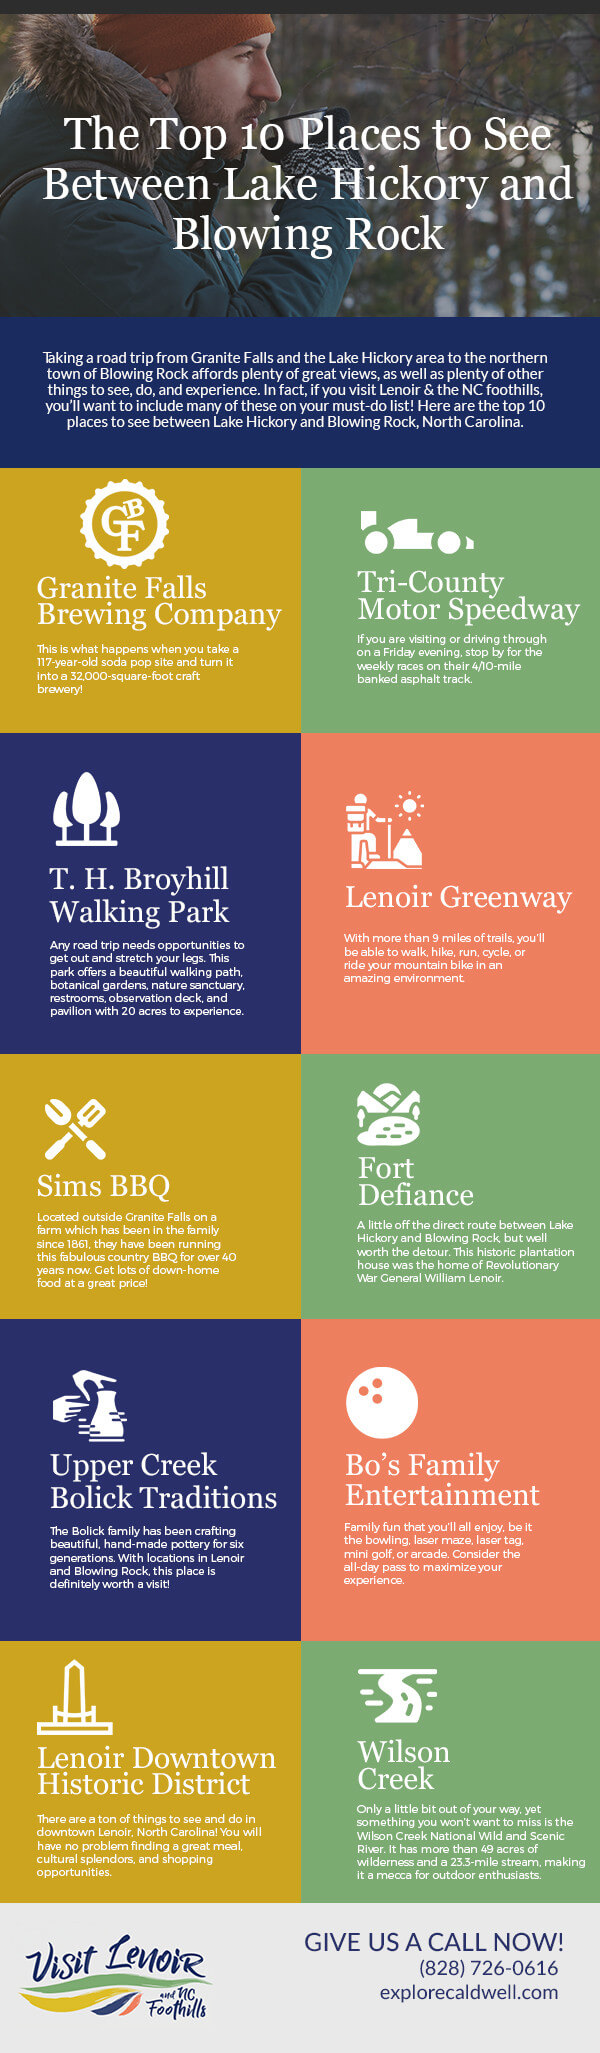 The Top 10 Places to See Between Lake Hickory and Blowing Rock Infographics